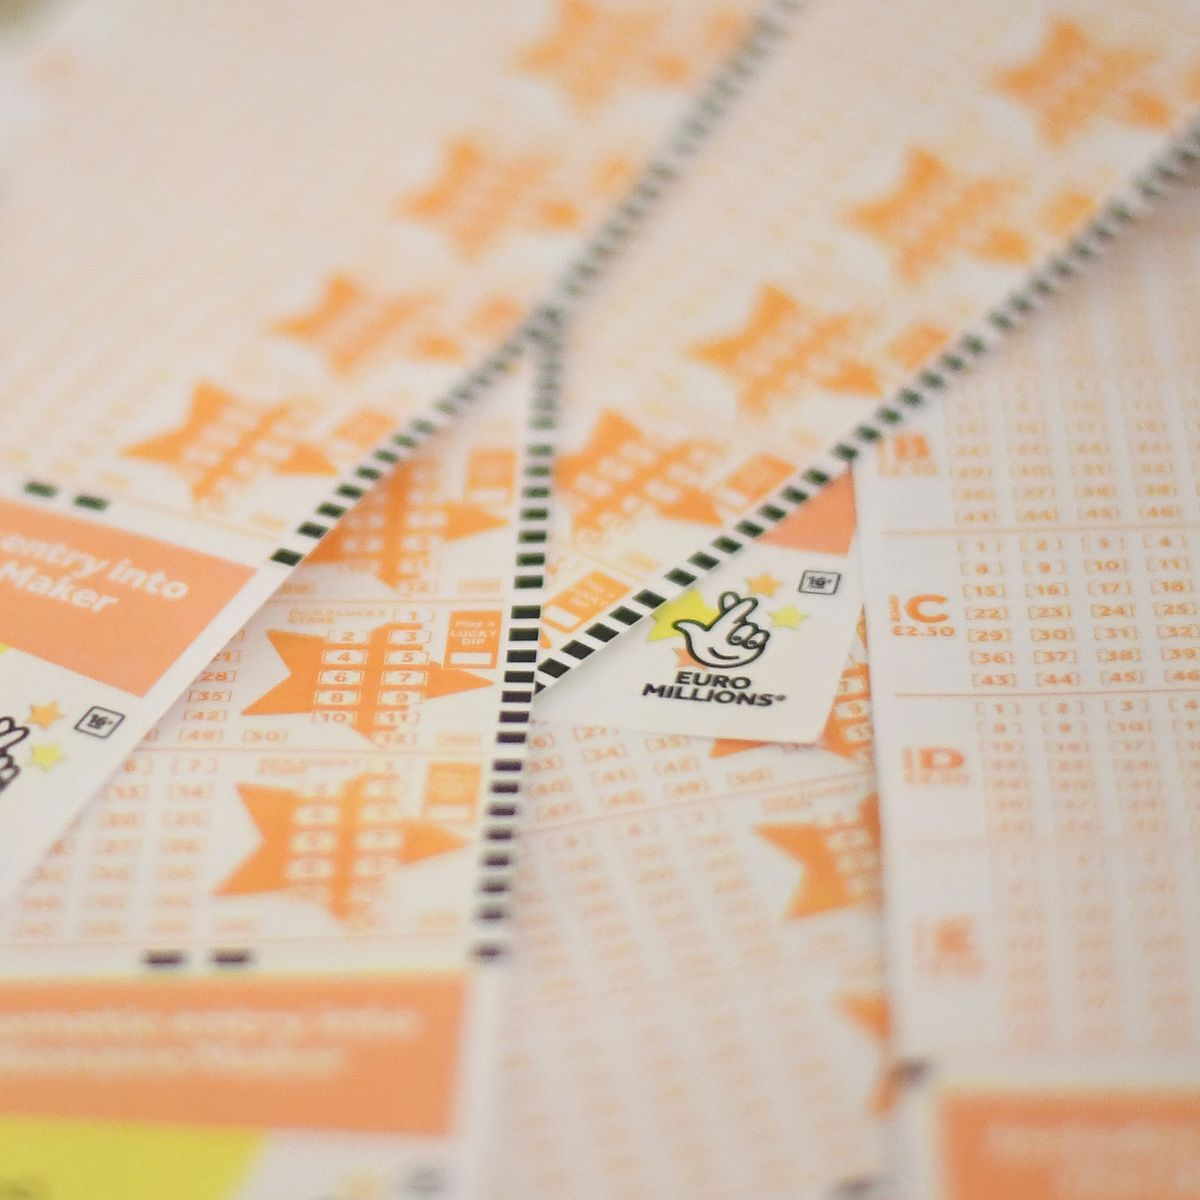 Euromillions results for 21st august 2020